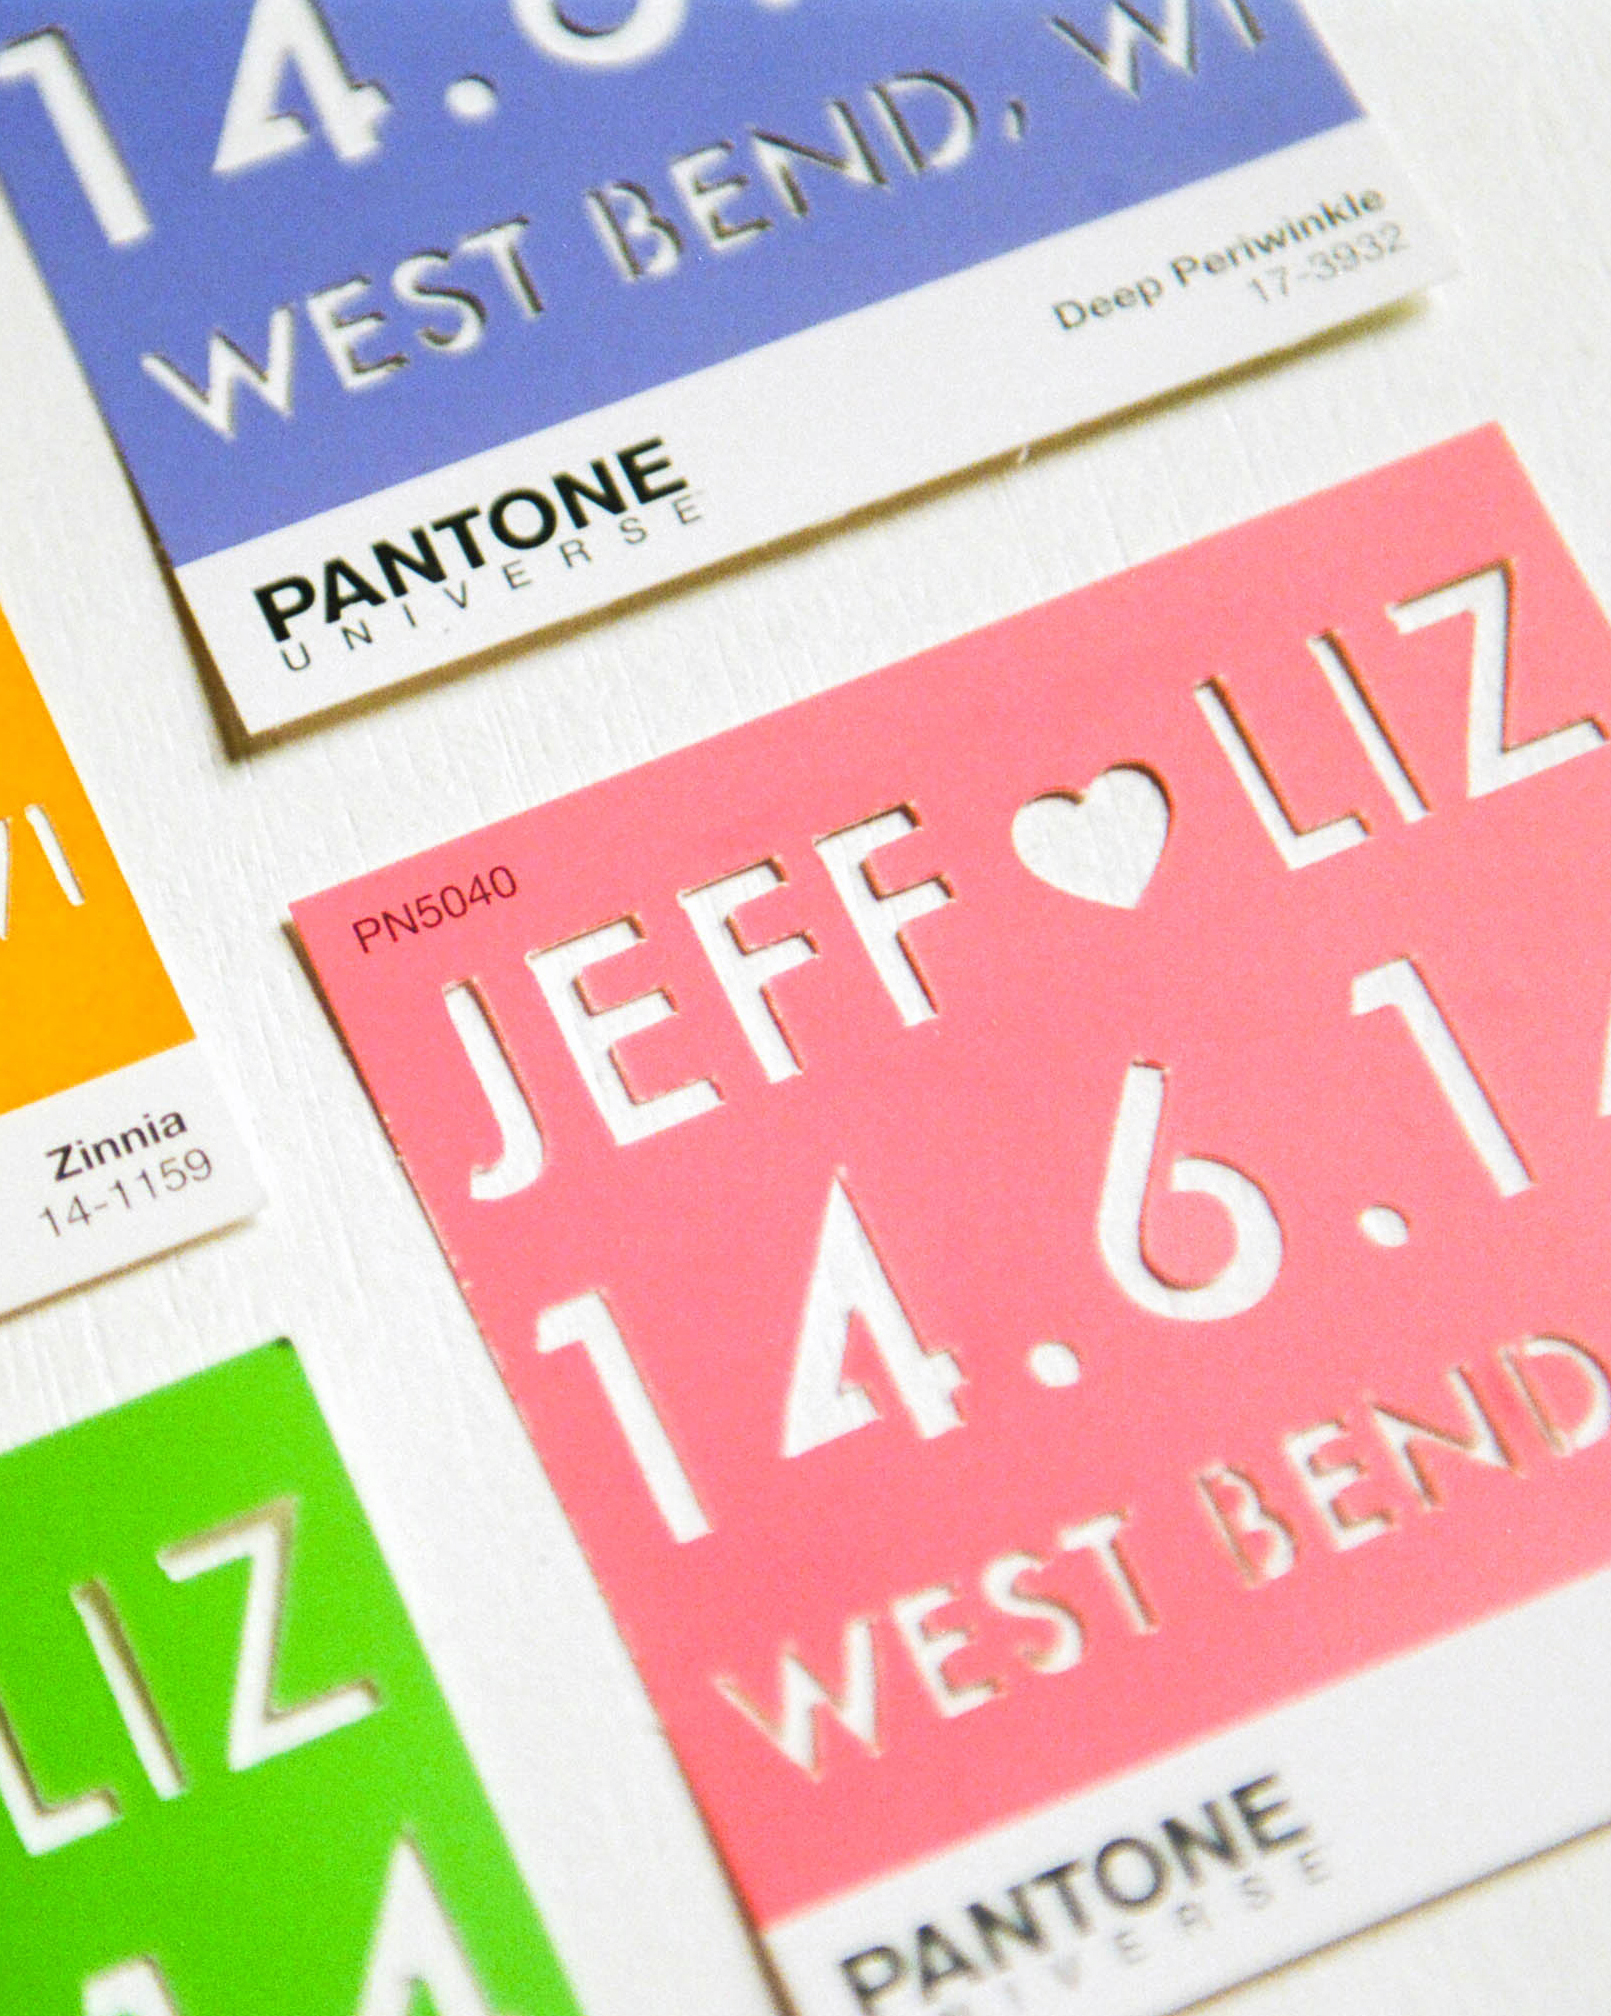 liz-jeff-wedding-stationery-894-s112303-1115.jpg